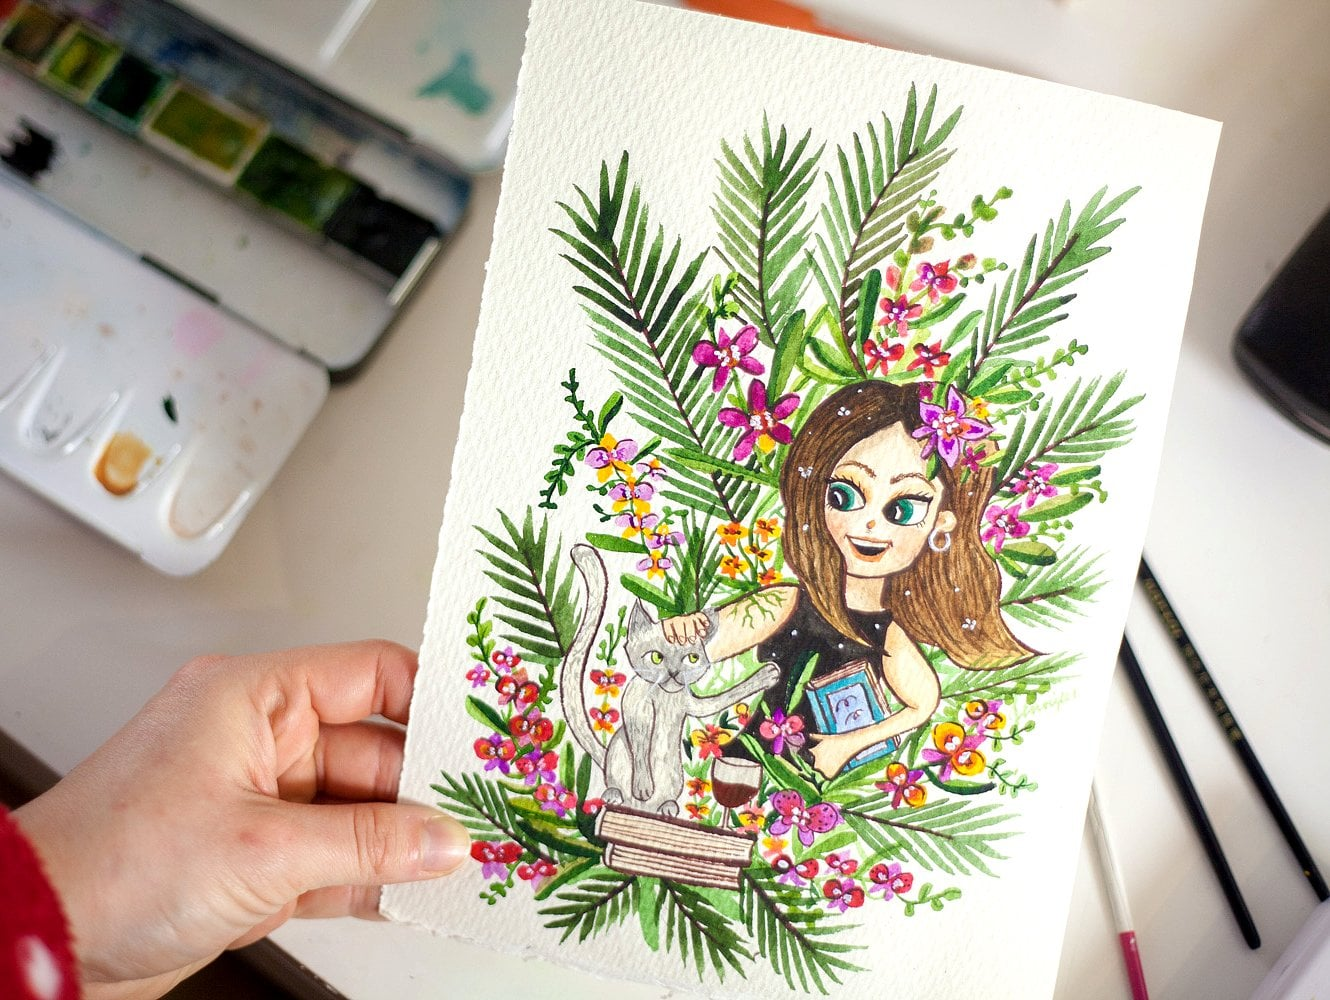 Custom watercolor portrait of a girl with an orchid in her hair. She is petting her gray cat and holding a book.